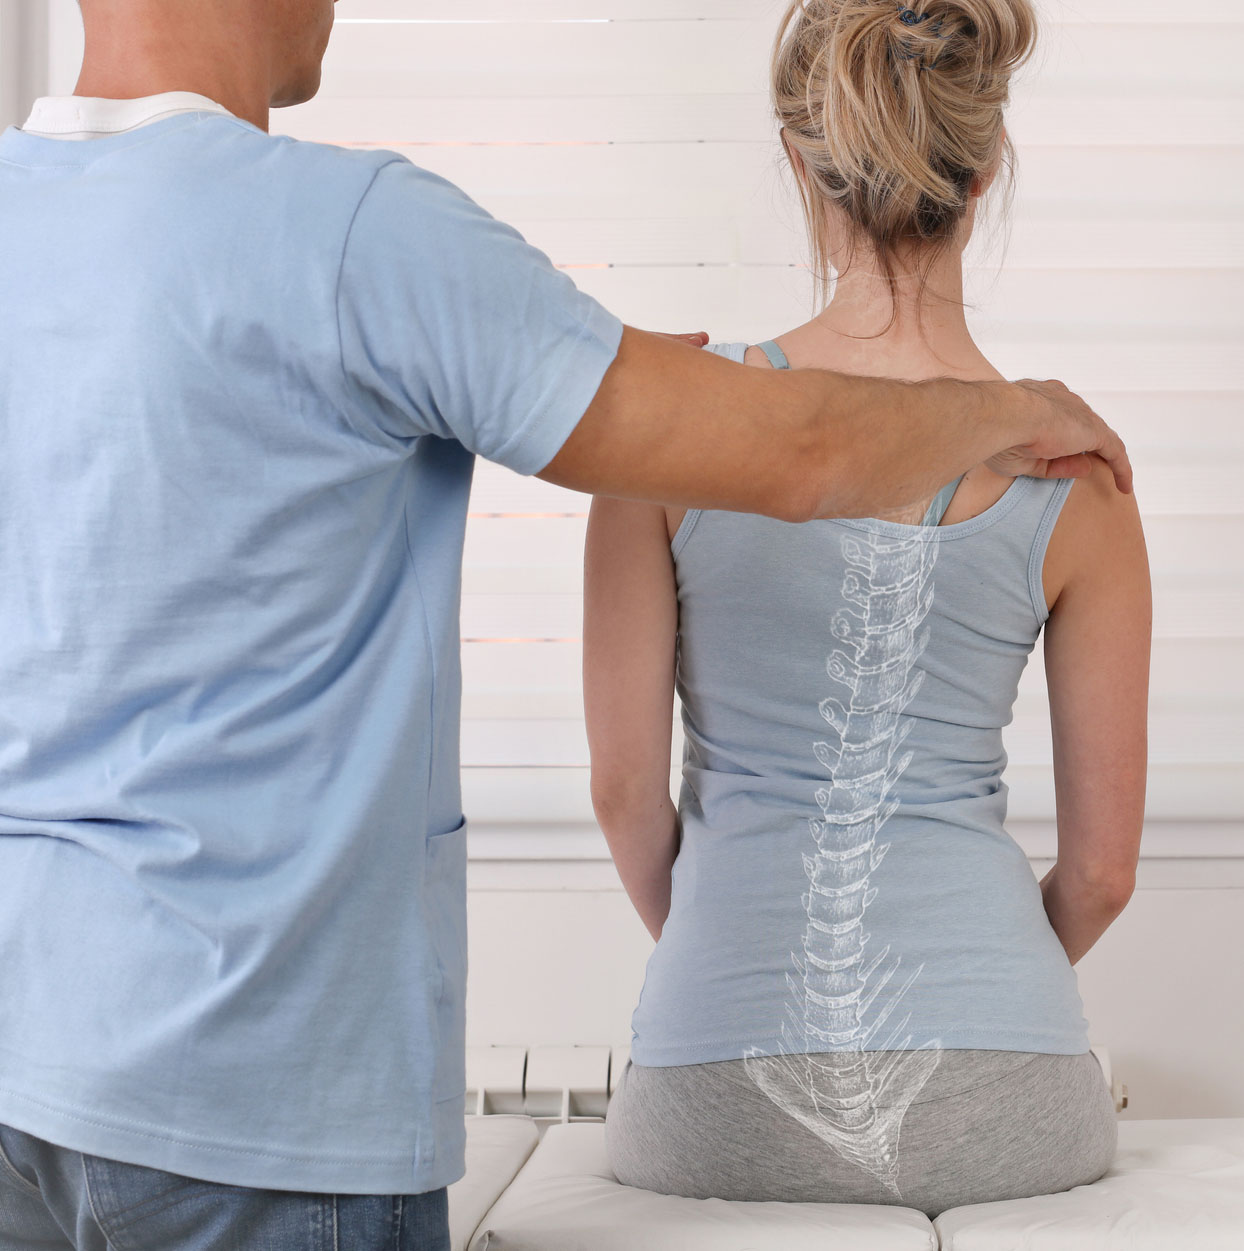 woman being examined by spine surgeon at sierra spine institute for posterior lumbar fusion